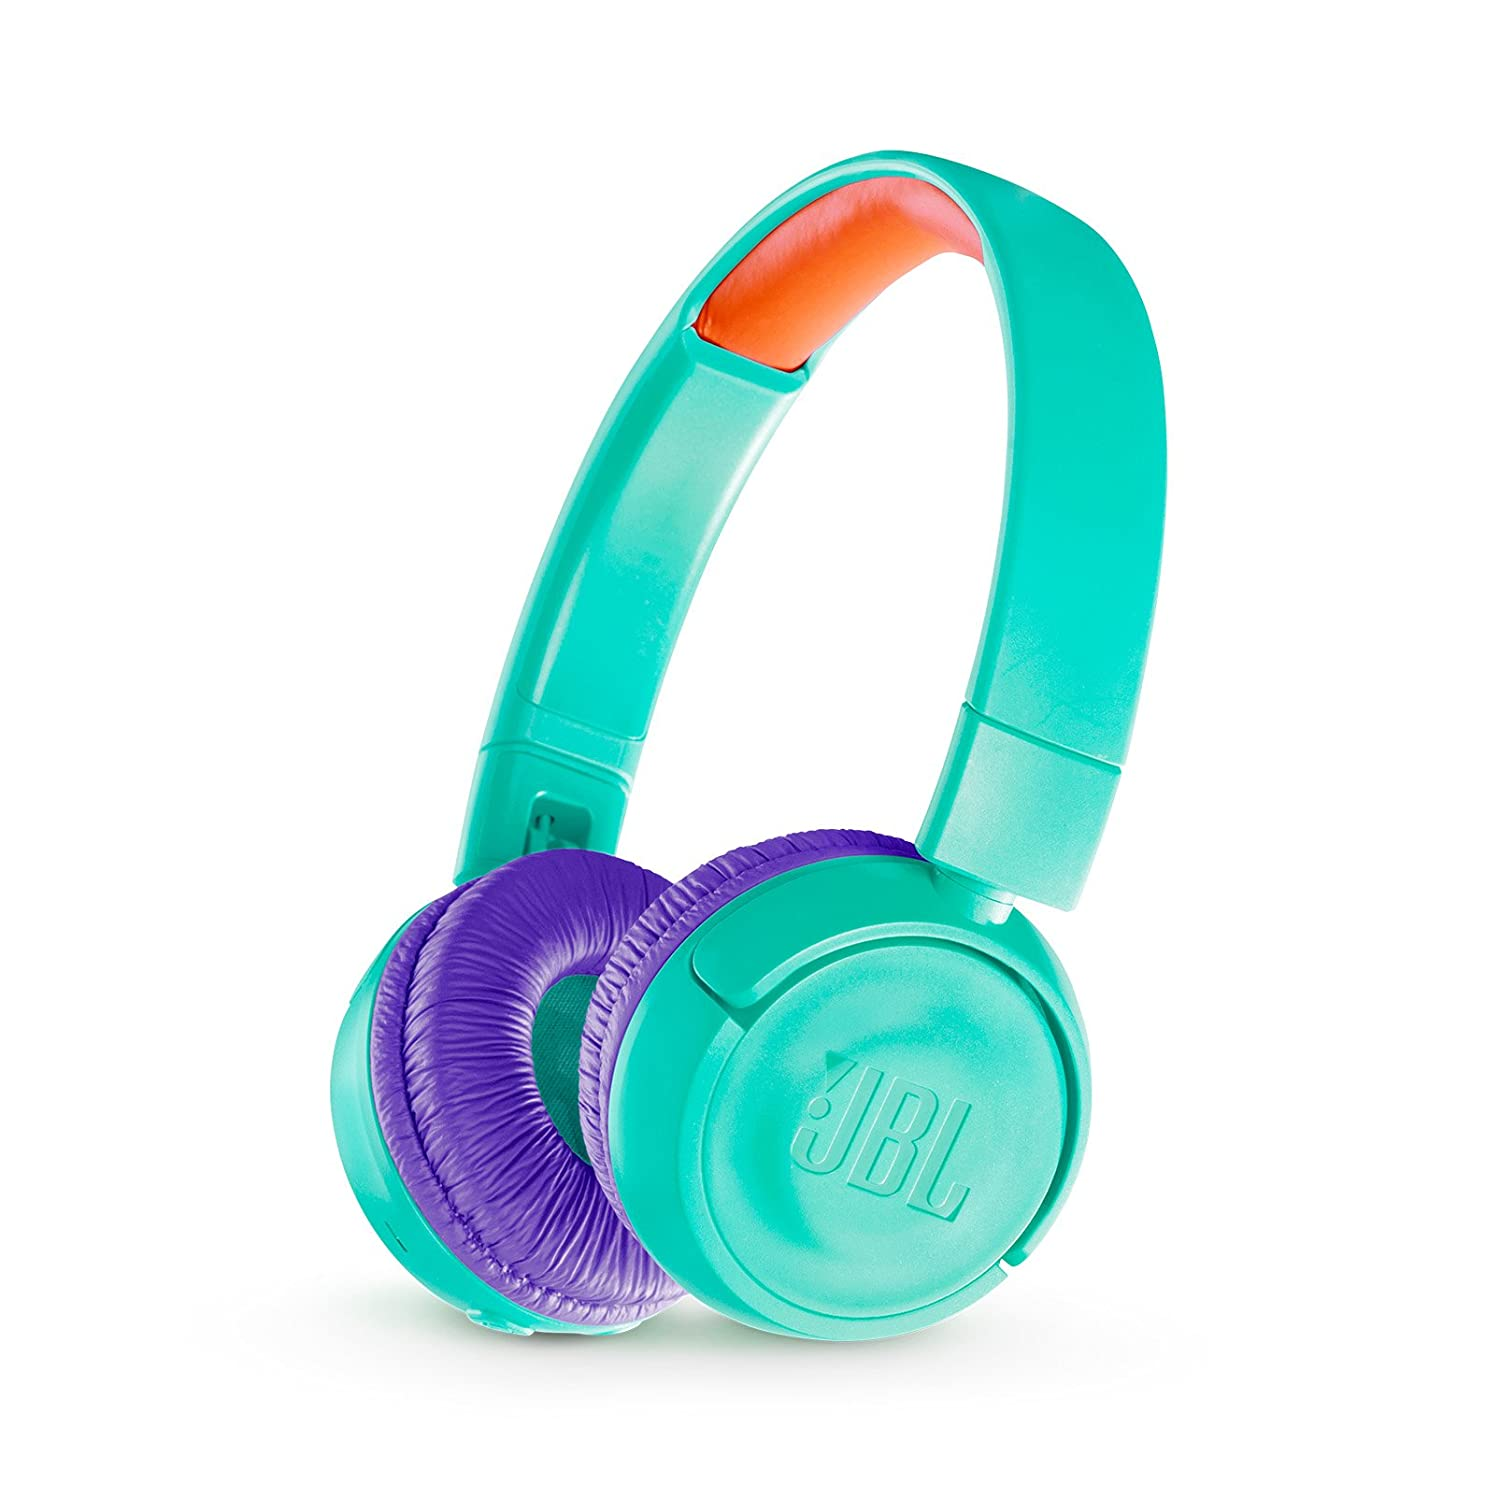 682e97e908f Amazon.com: JBL JR 300BT Kids On-Ear Wireless Headphones Safe Sound  Technology (Teal): Health & Personal Care